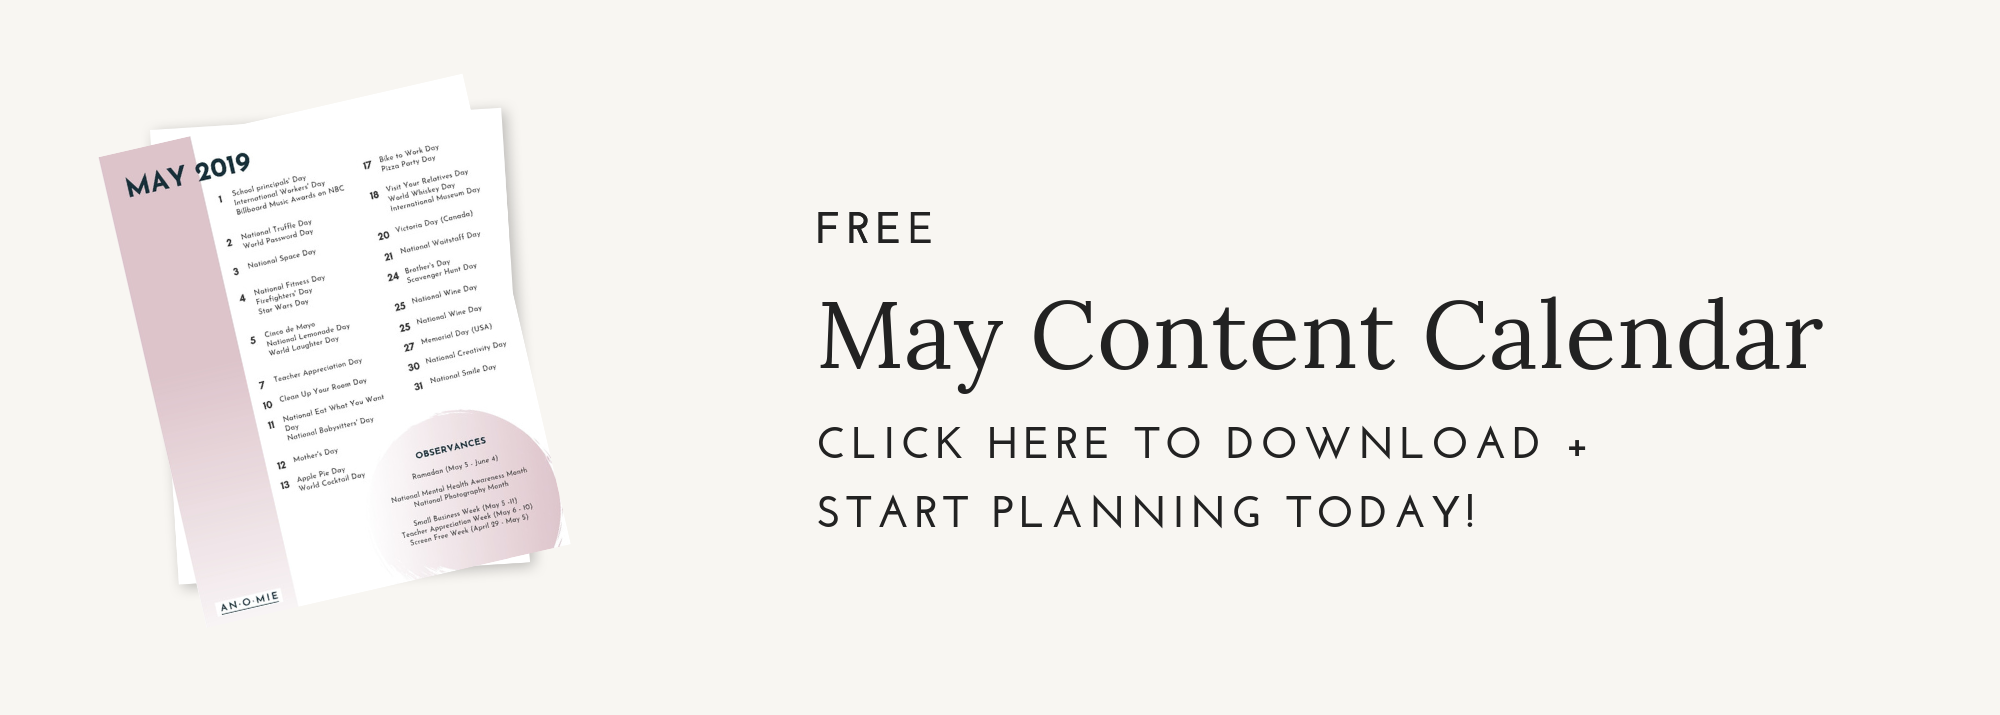 May Content Calendar Opt In